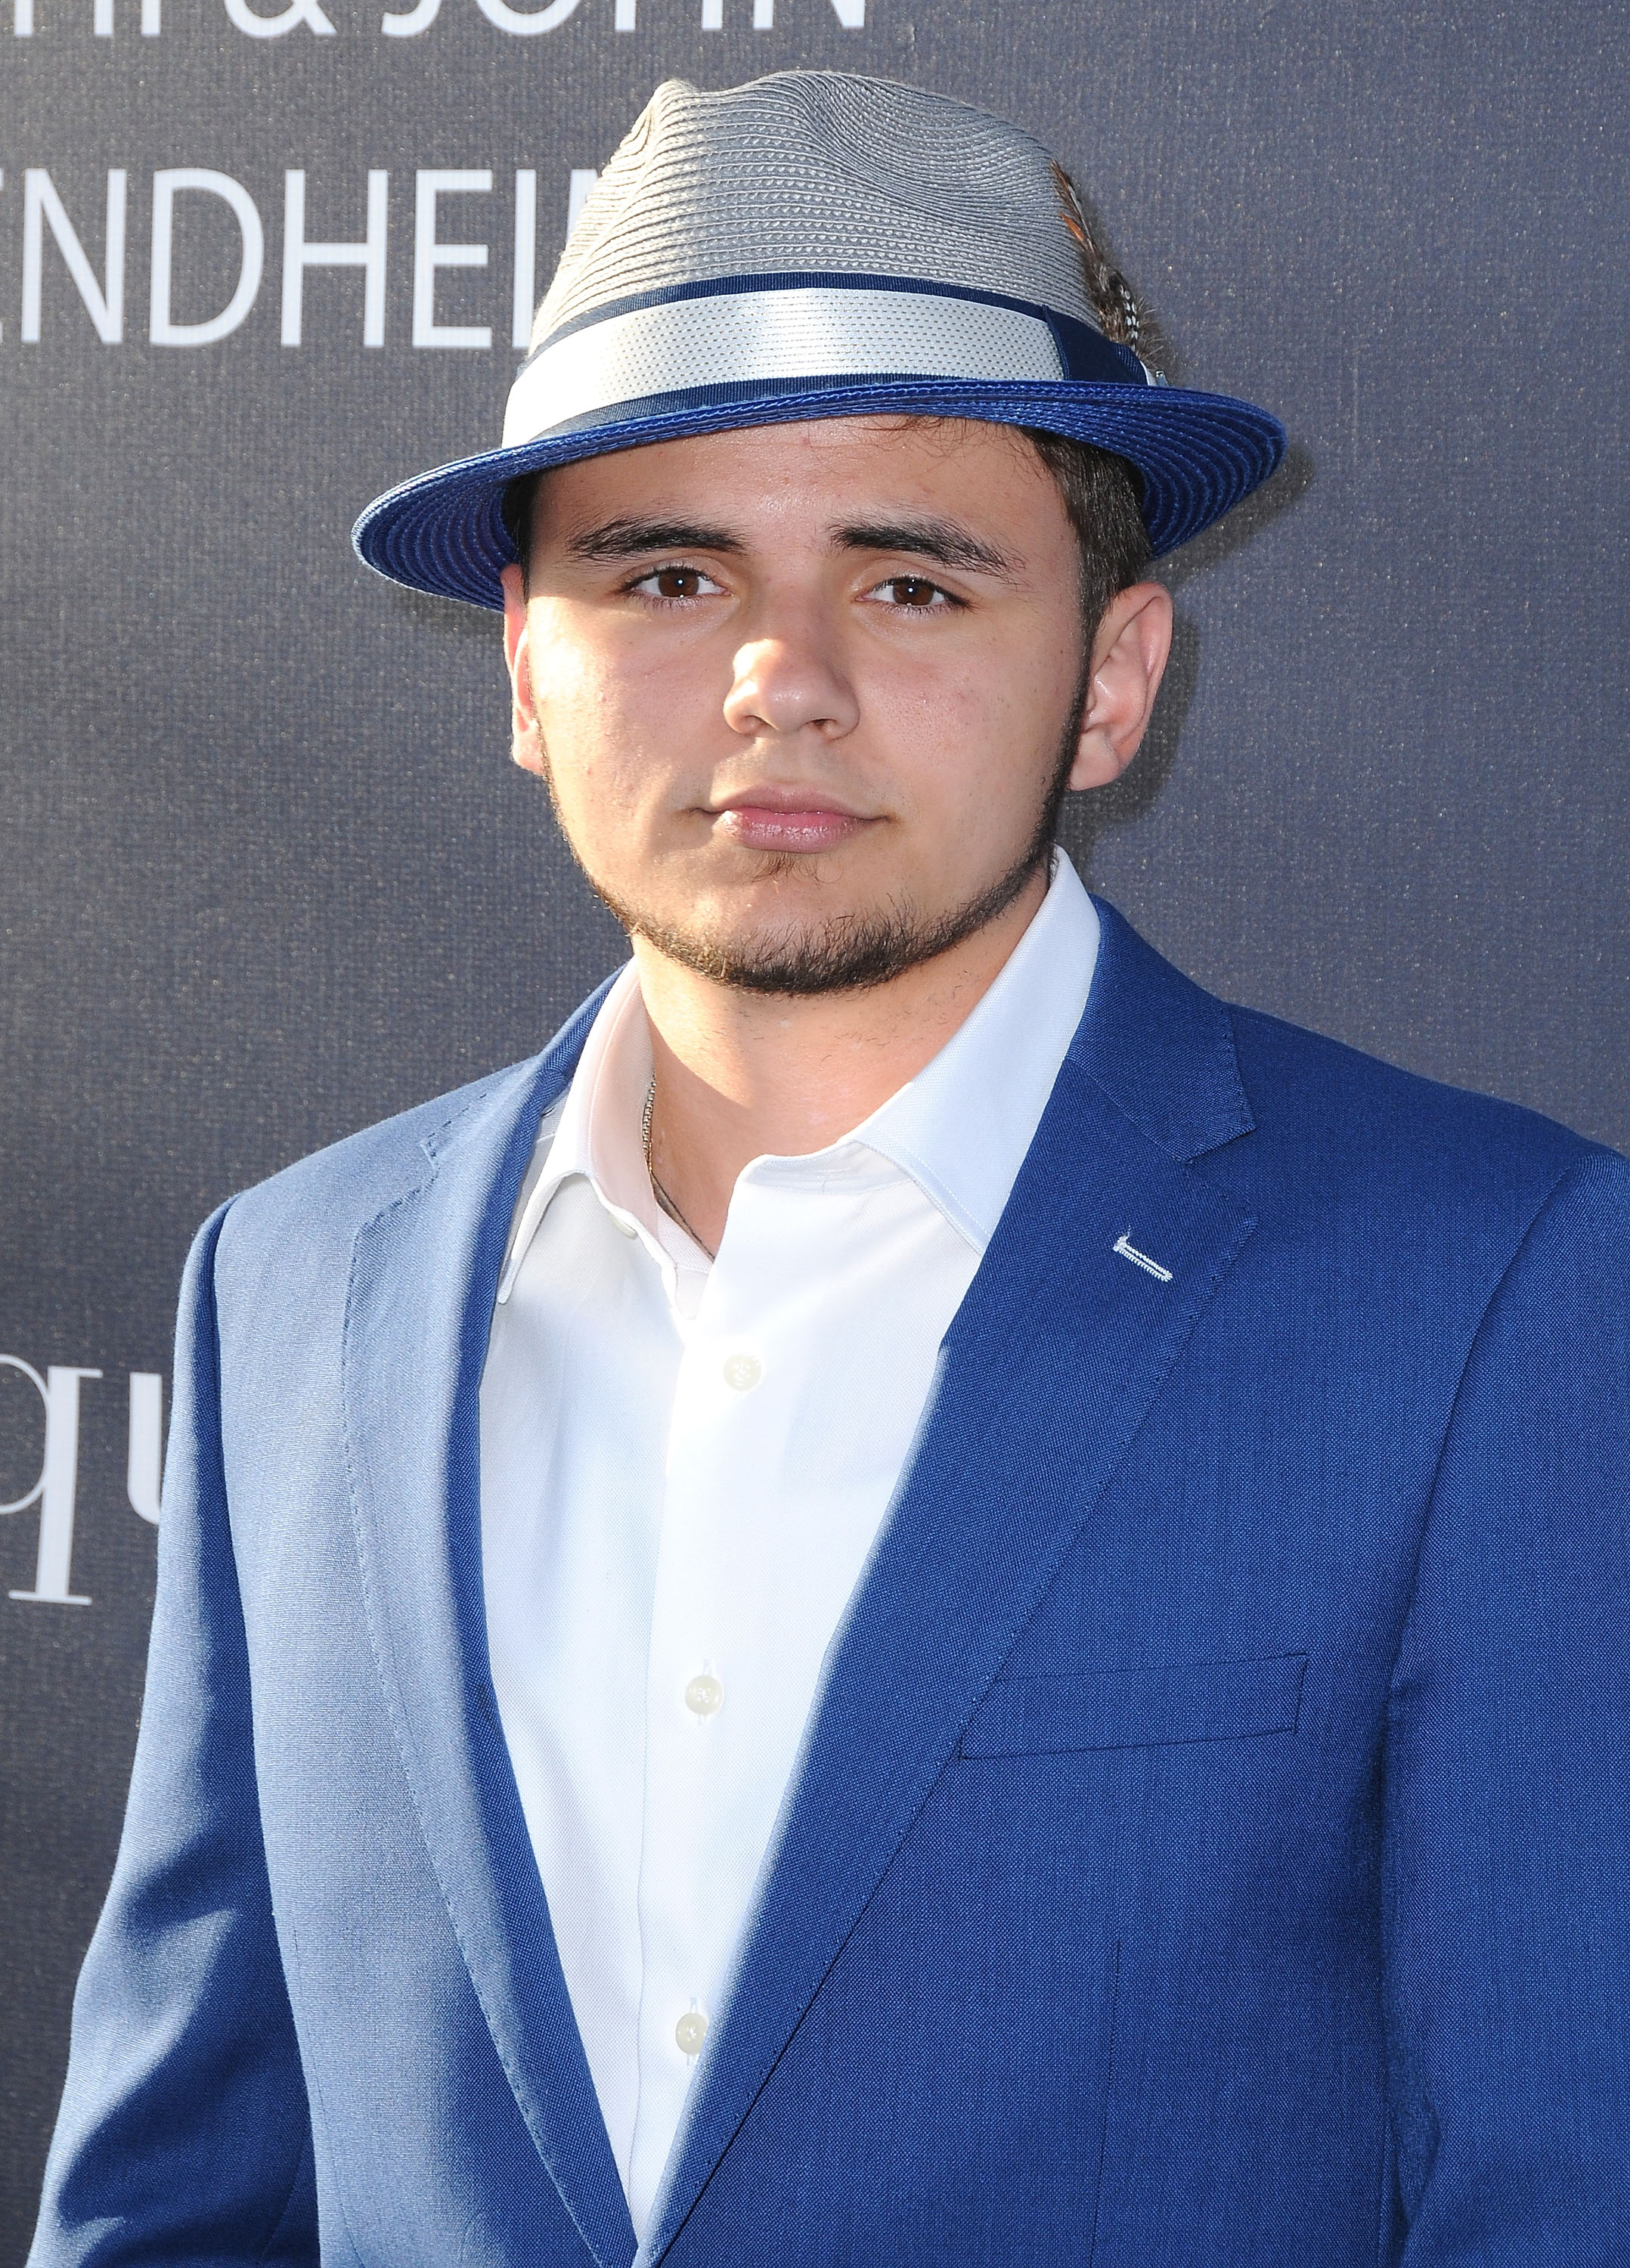 Prince Jackson attends the Los Angeles Dodgers Foundation's 3rd Annual Blue Diamond Gala at Dodger Stadium on June 8, 2017 | Photo: Getty Images